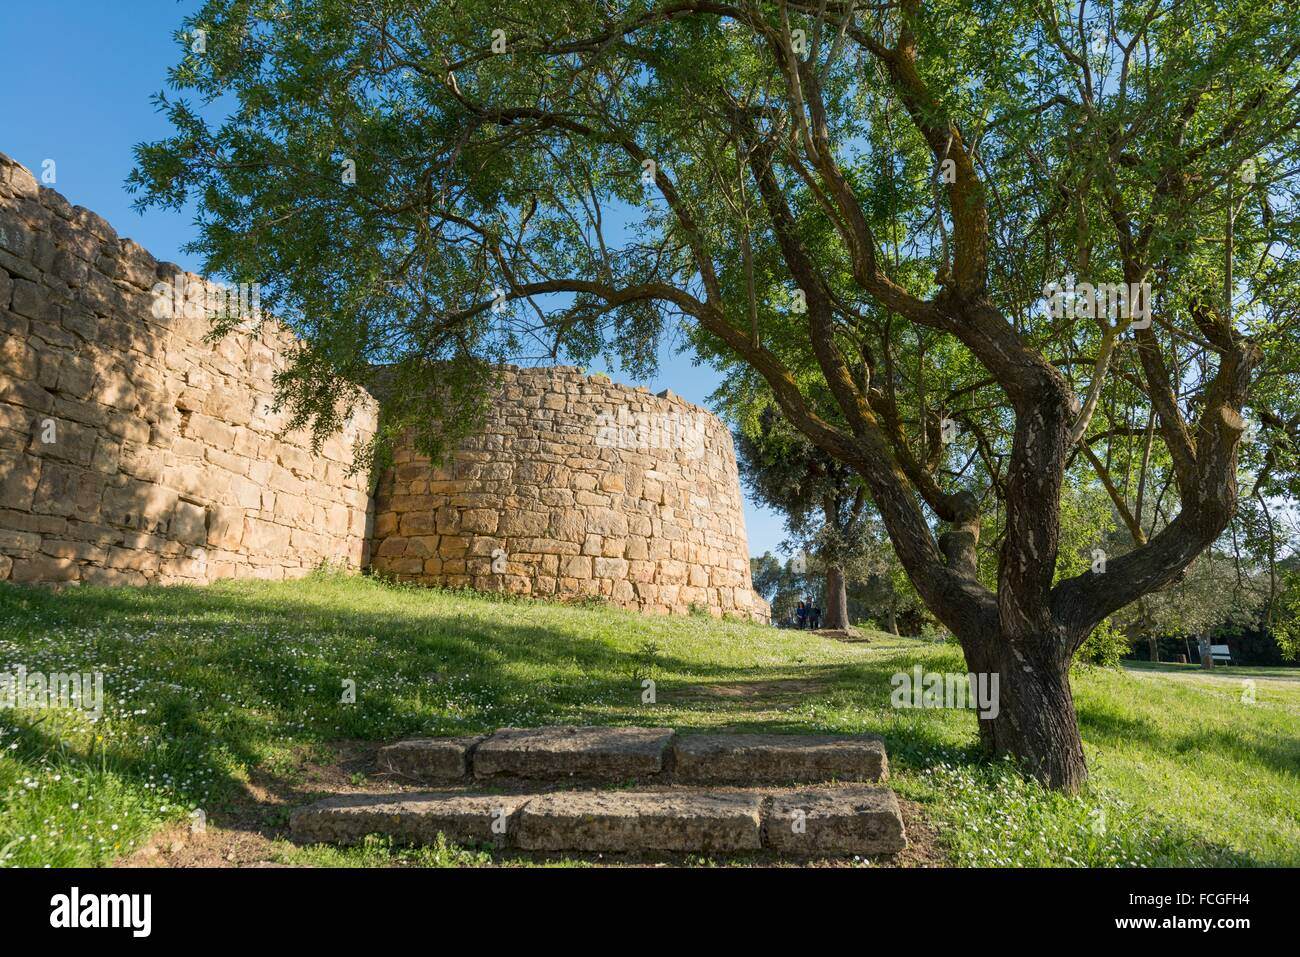 Remains of a strategic location of the Indigetes from the pre-Roman period, Ullastret, Spain. - Stock Image